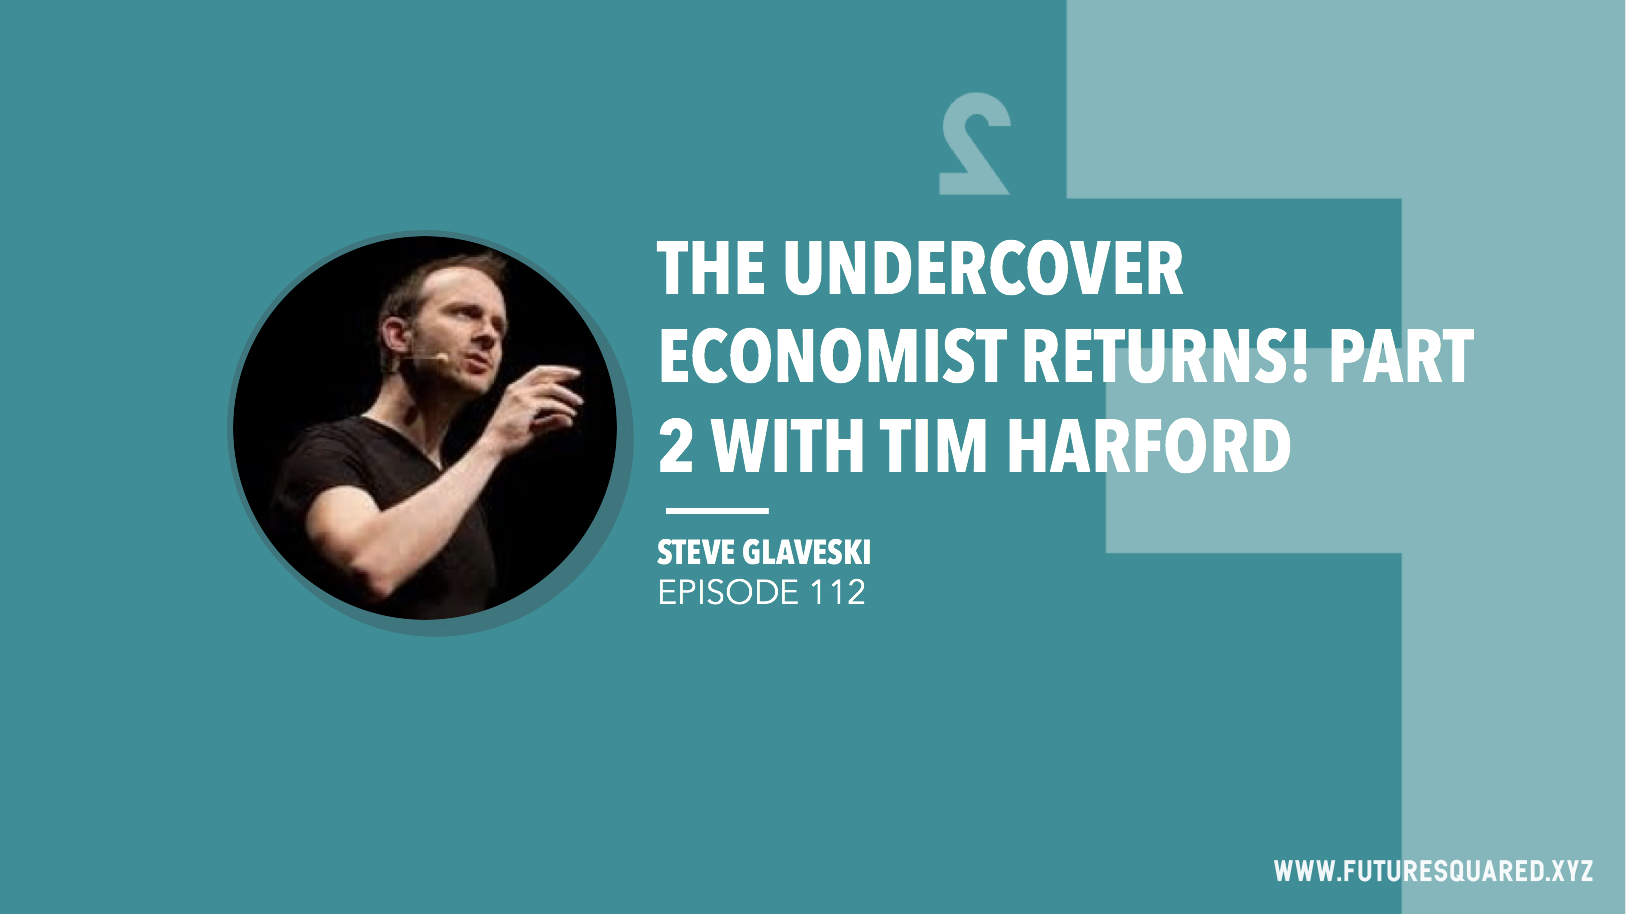 Future Squared Episode #112: The Undercover Economist Returns! Part 2 with Tim Harford